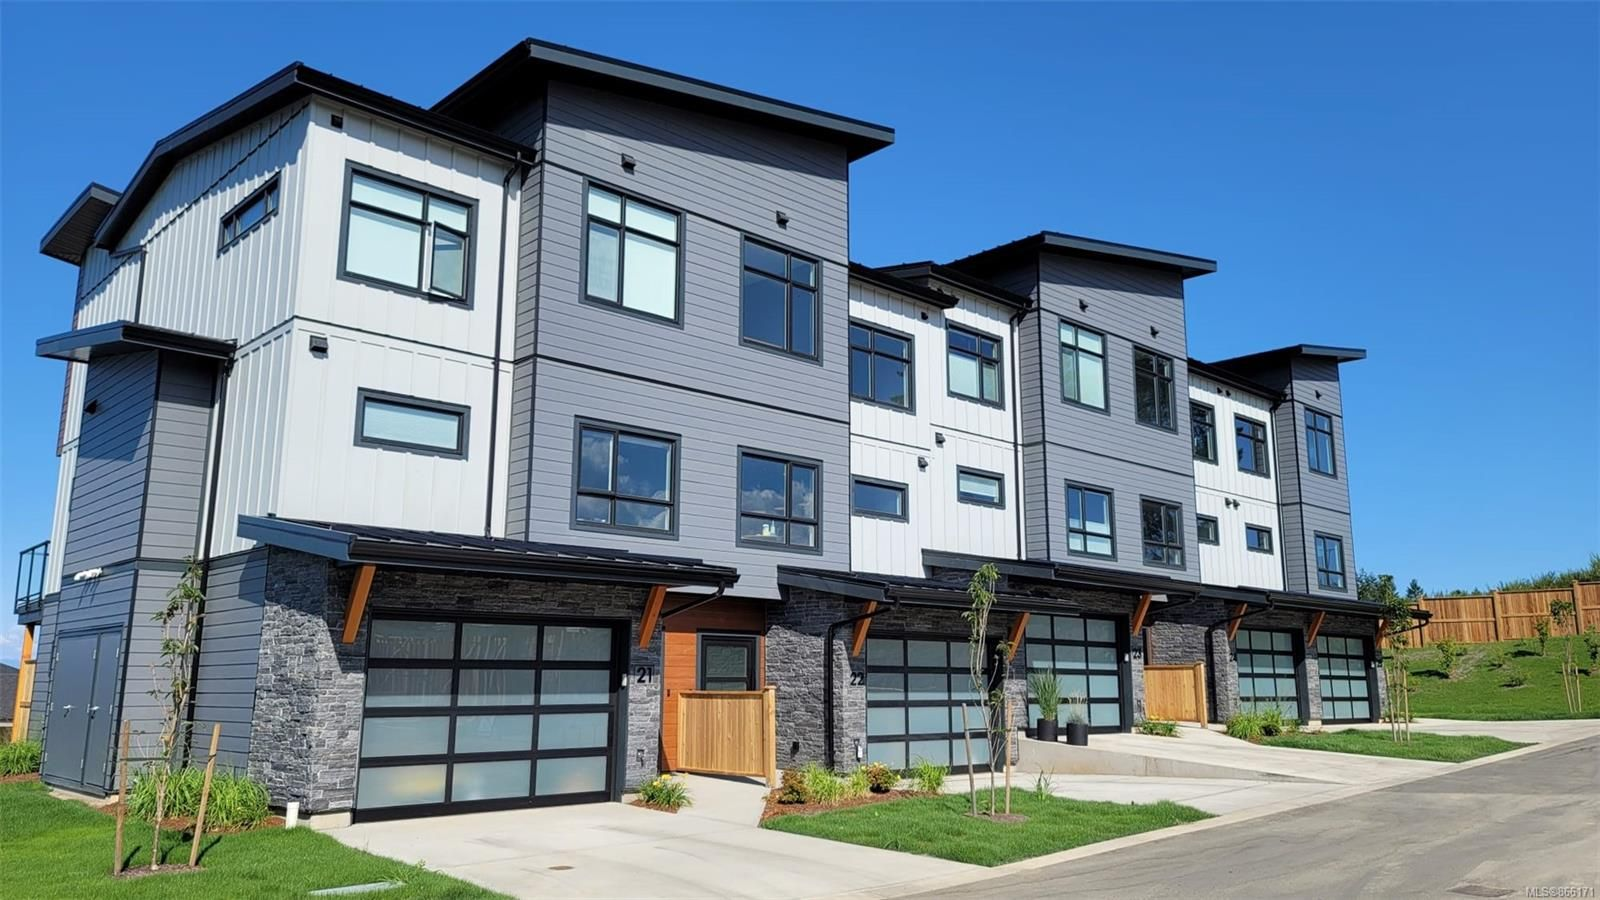 Main Photo: SL19 623 Crown Isle Blvd in Courtenay: CV Crown Isle Row/Townhouse for sale (Comox Valley)  : MLS®# 866171